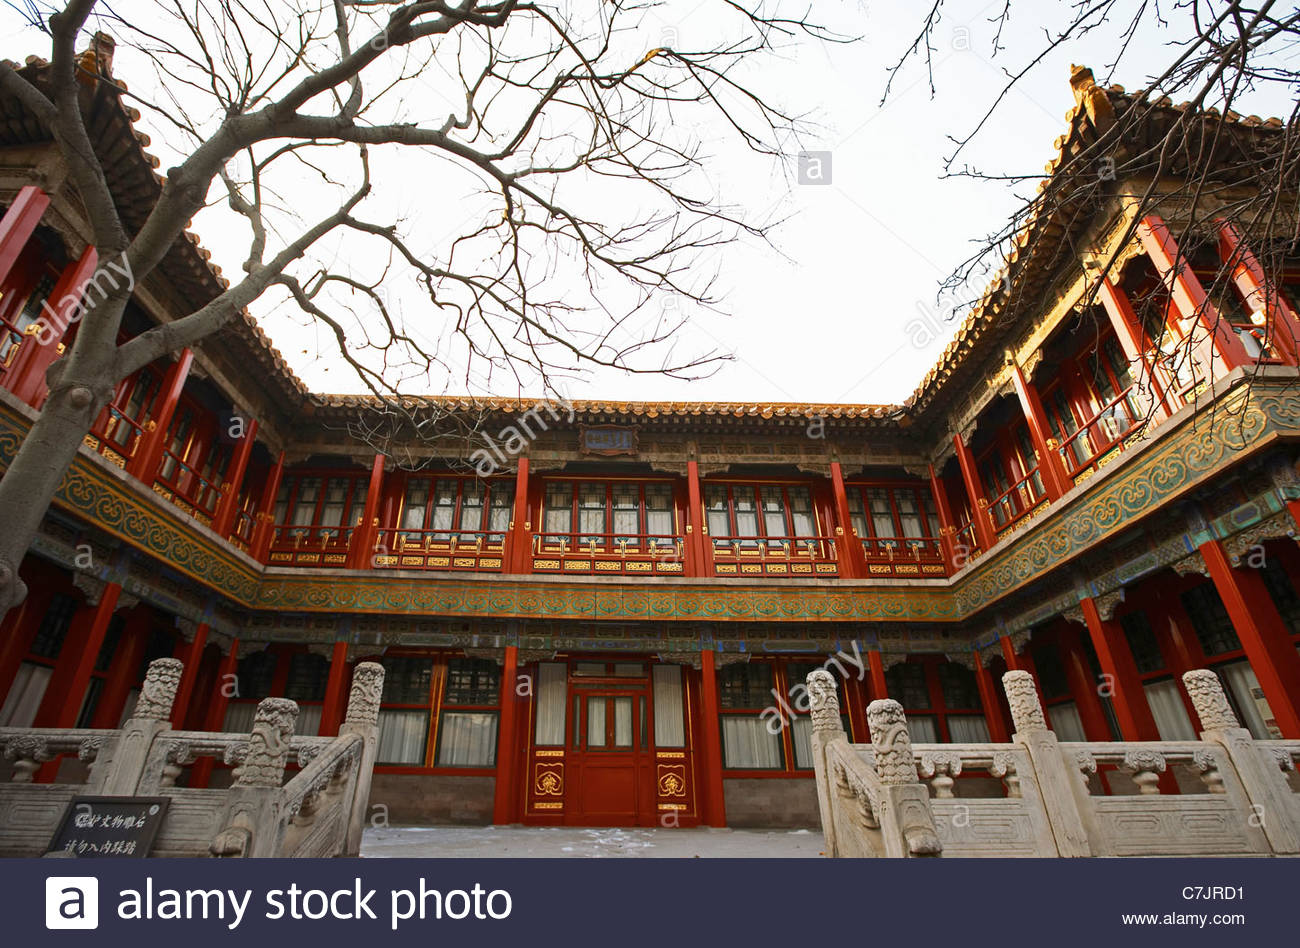 Ornate Chinese building with courtyard - Stock Image